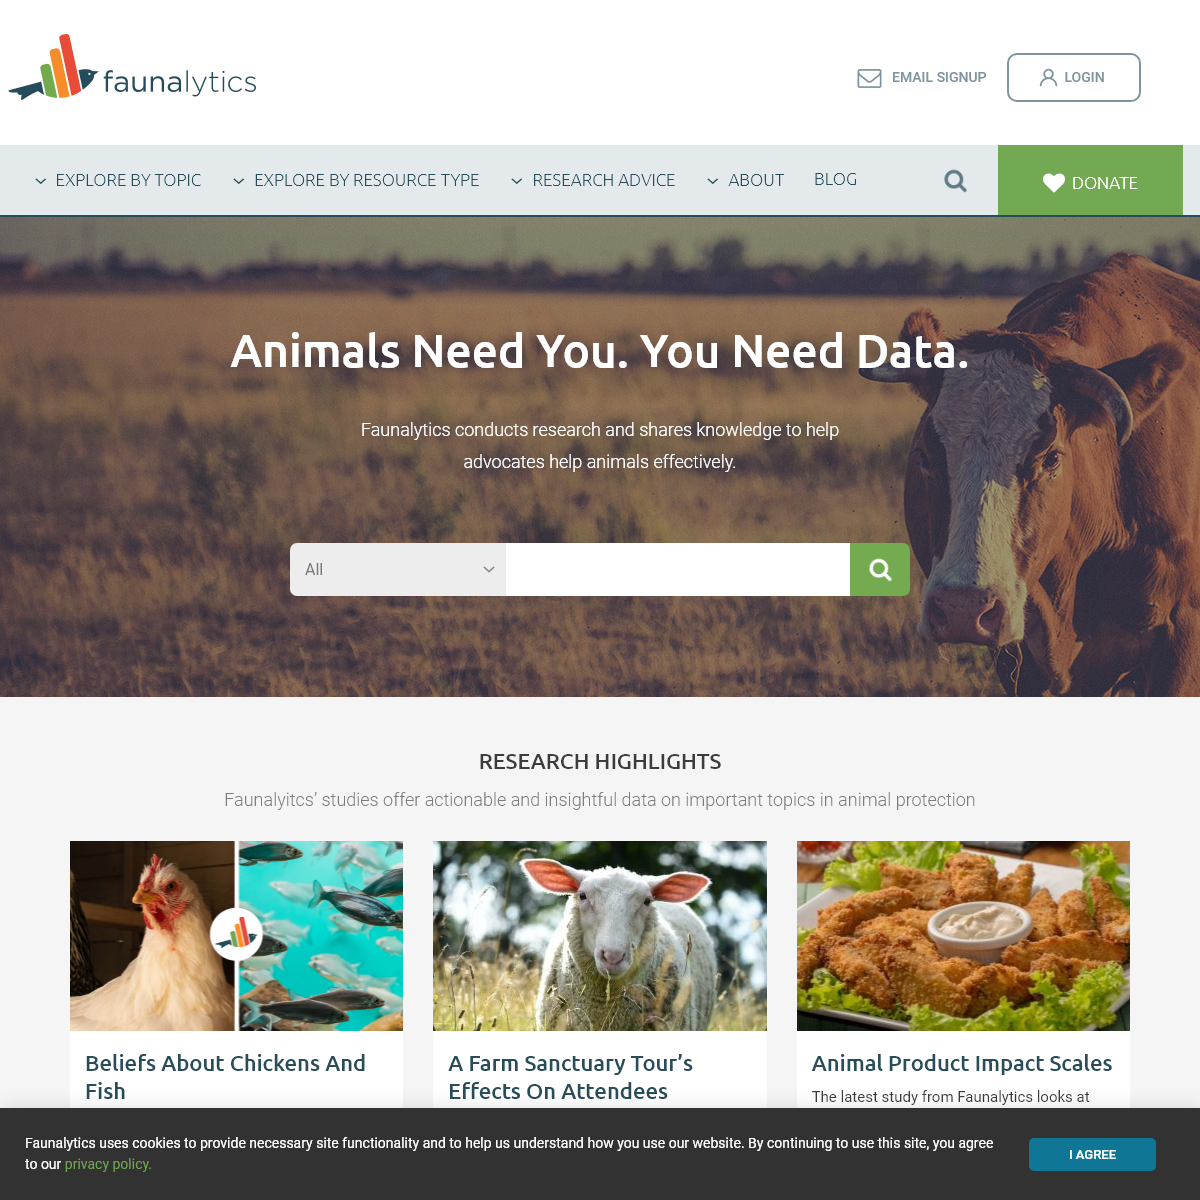 Research For Effective Animal Advocacy - Faunalytics